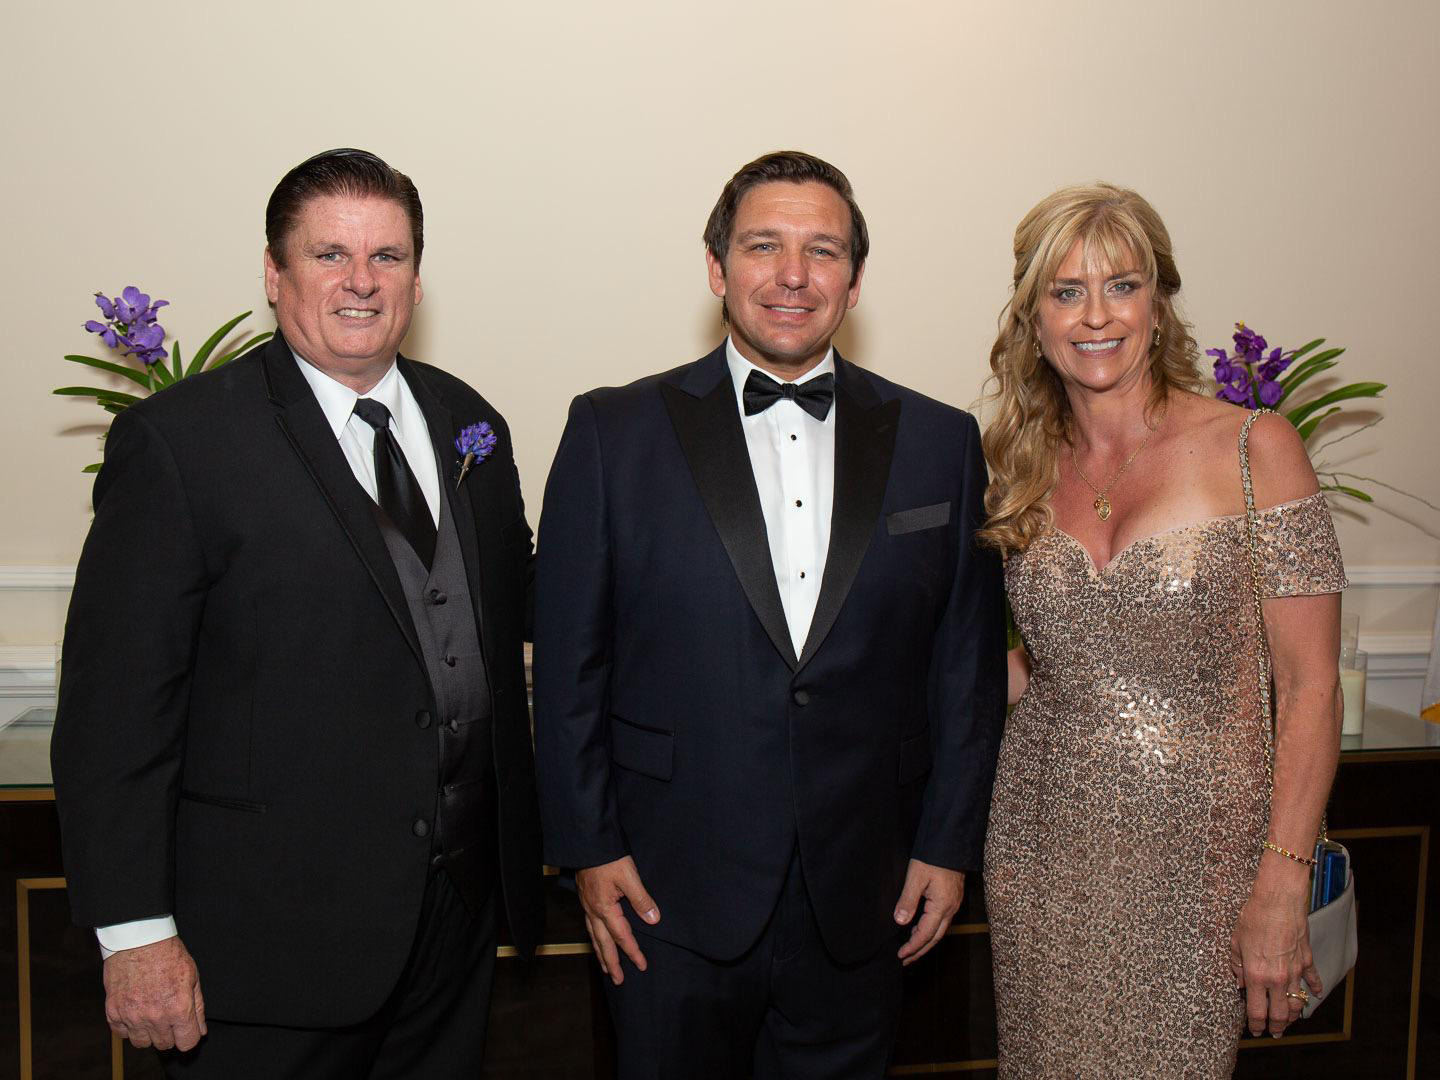 Steadman Stahl, President of Dade County PBA, Governor of Florida Ron DeSantis, & Cindy McMillan